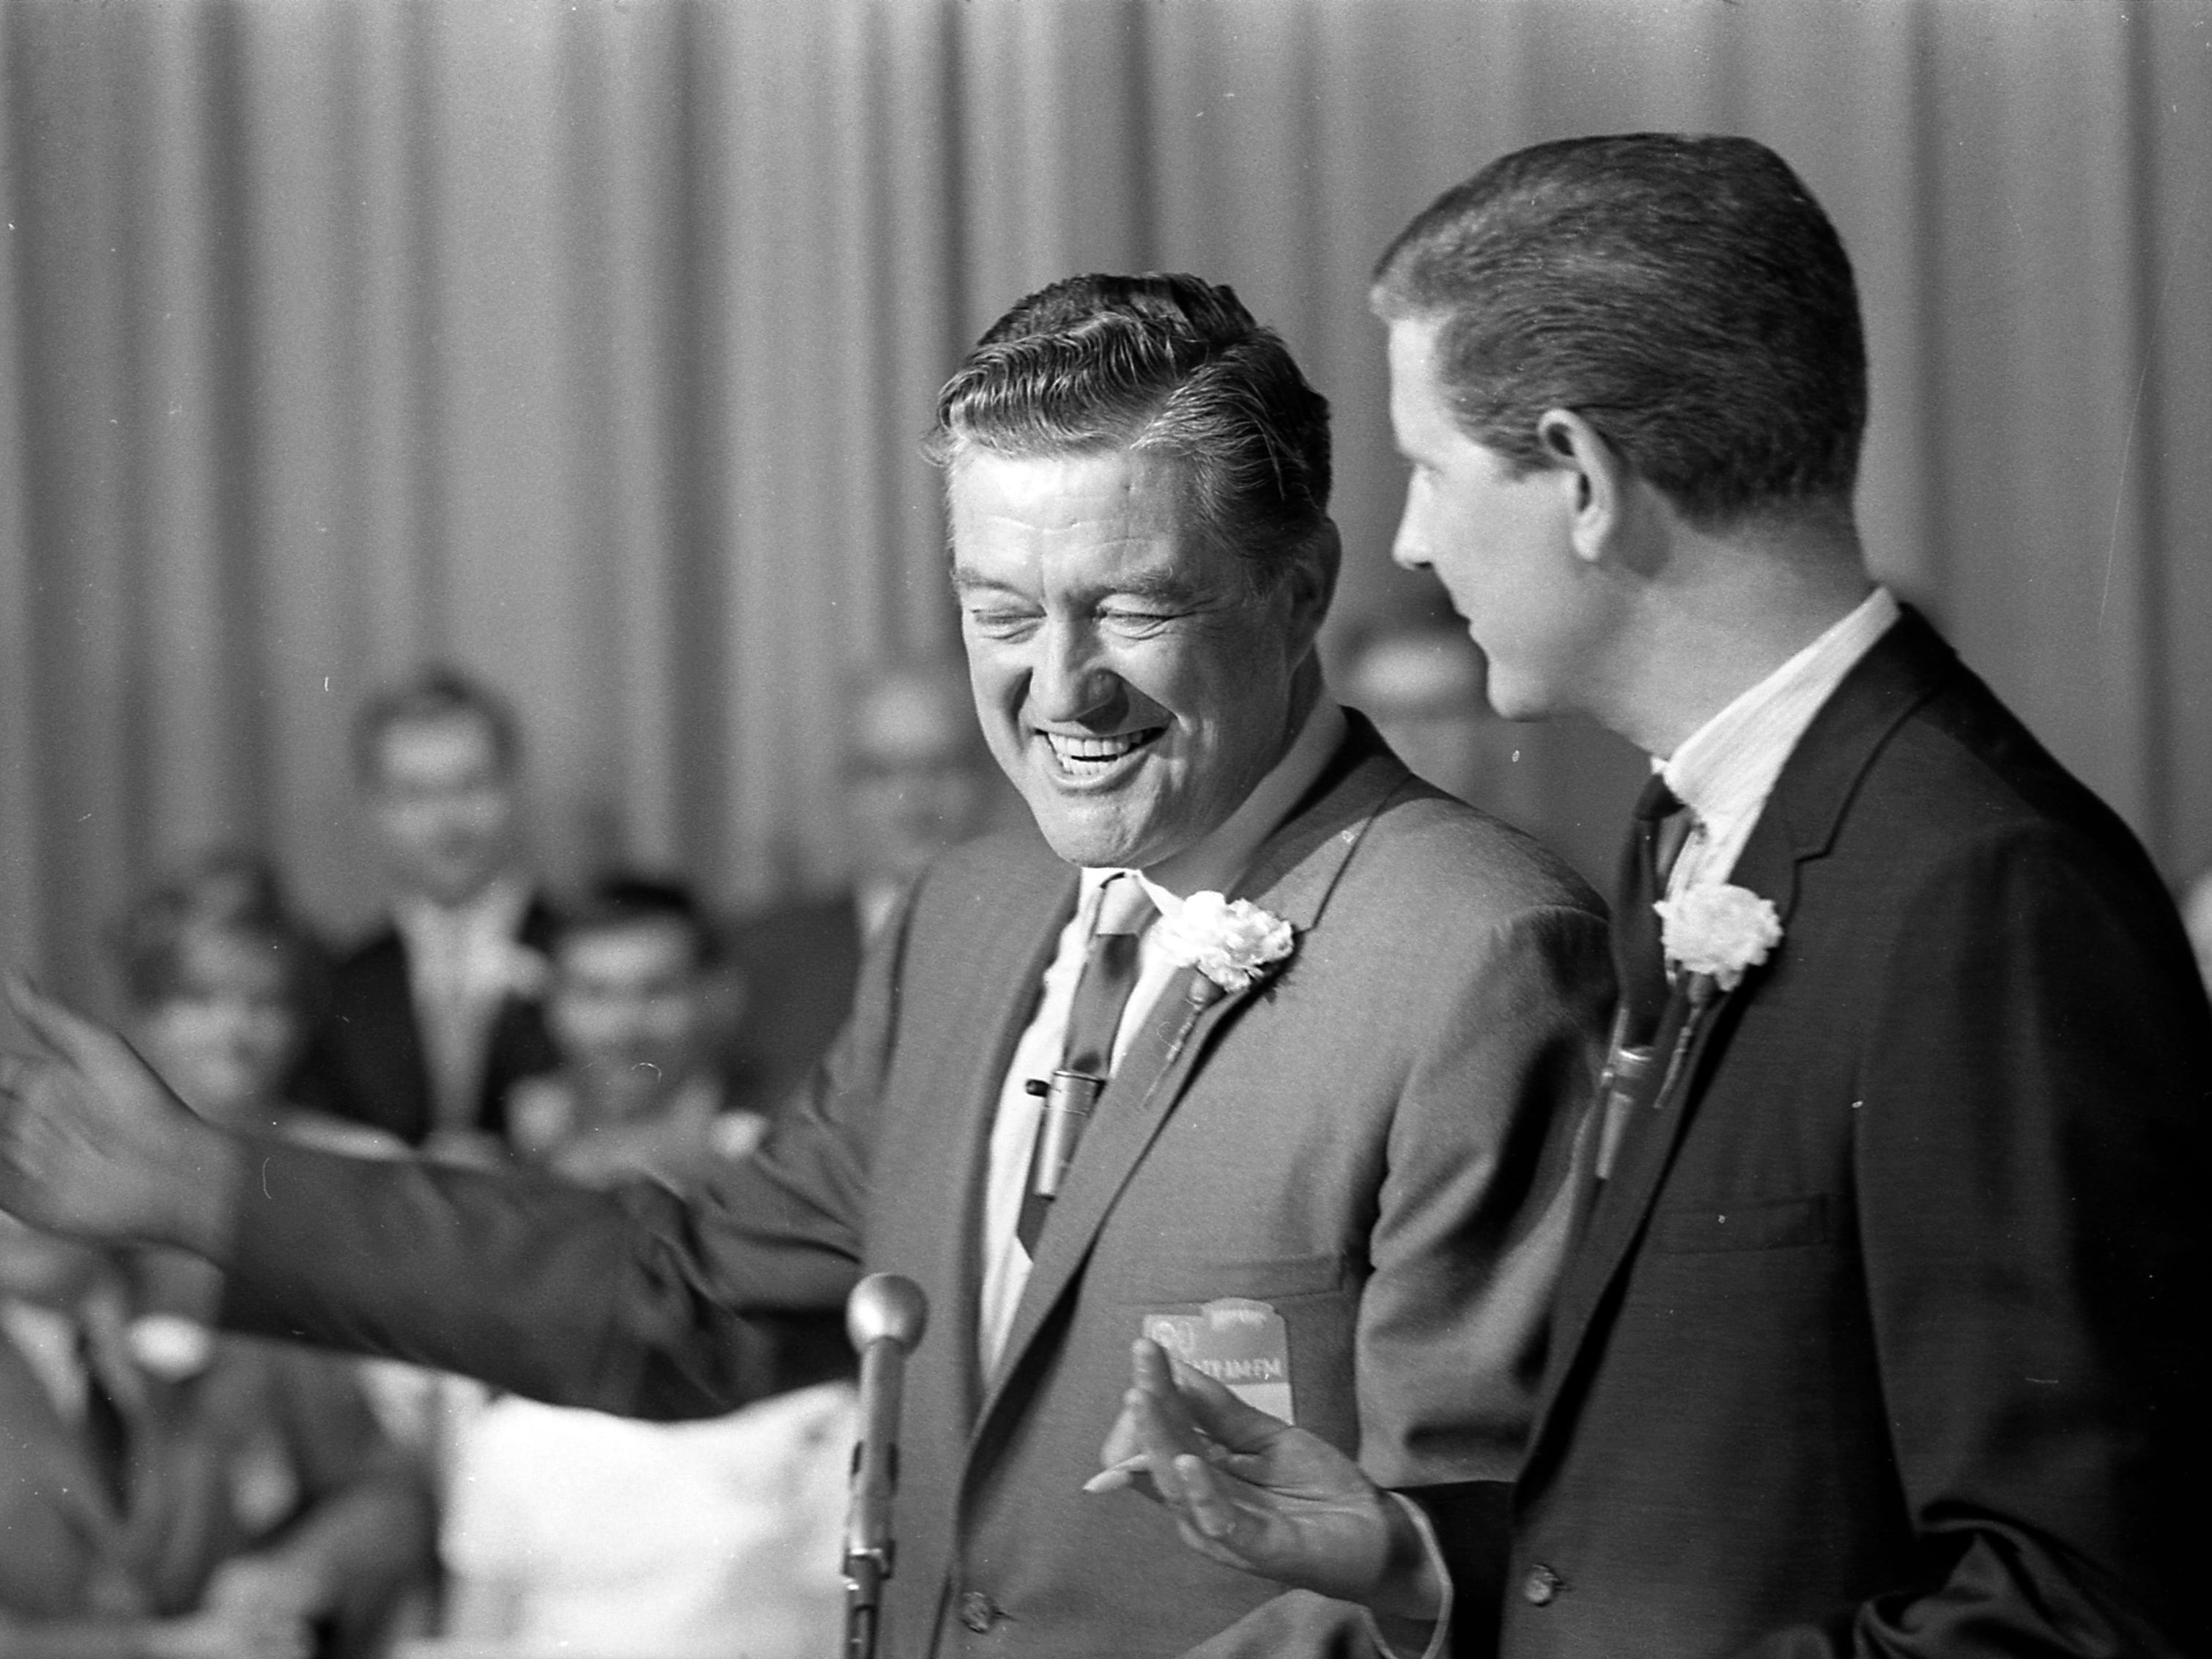 Veteran actor Dennis Morgan (left), a Wisconsin native who got his start singing at WTMJ radio, takes part in the station's 40th anniversary celebration in 1967. This photo was published in the Aug. 6, 1967, Milwaukee Journal, which owned WTMJ at the time.